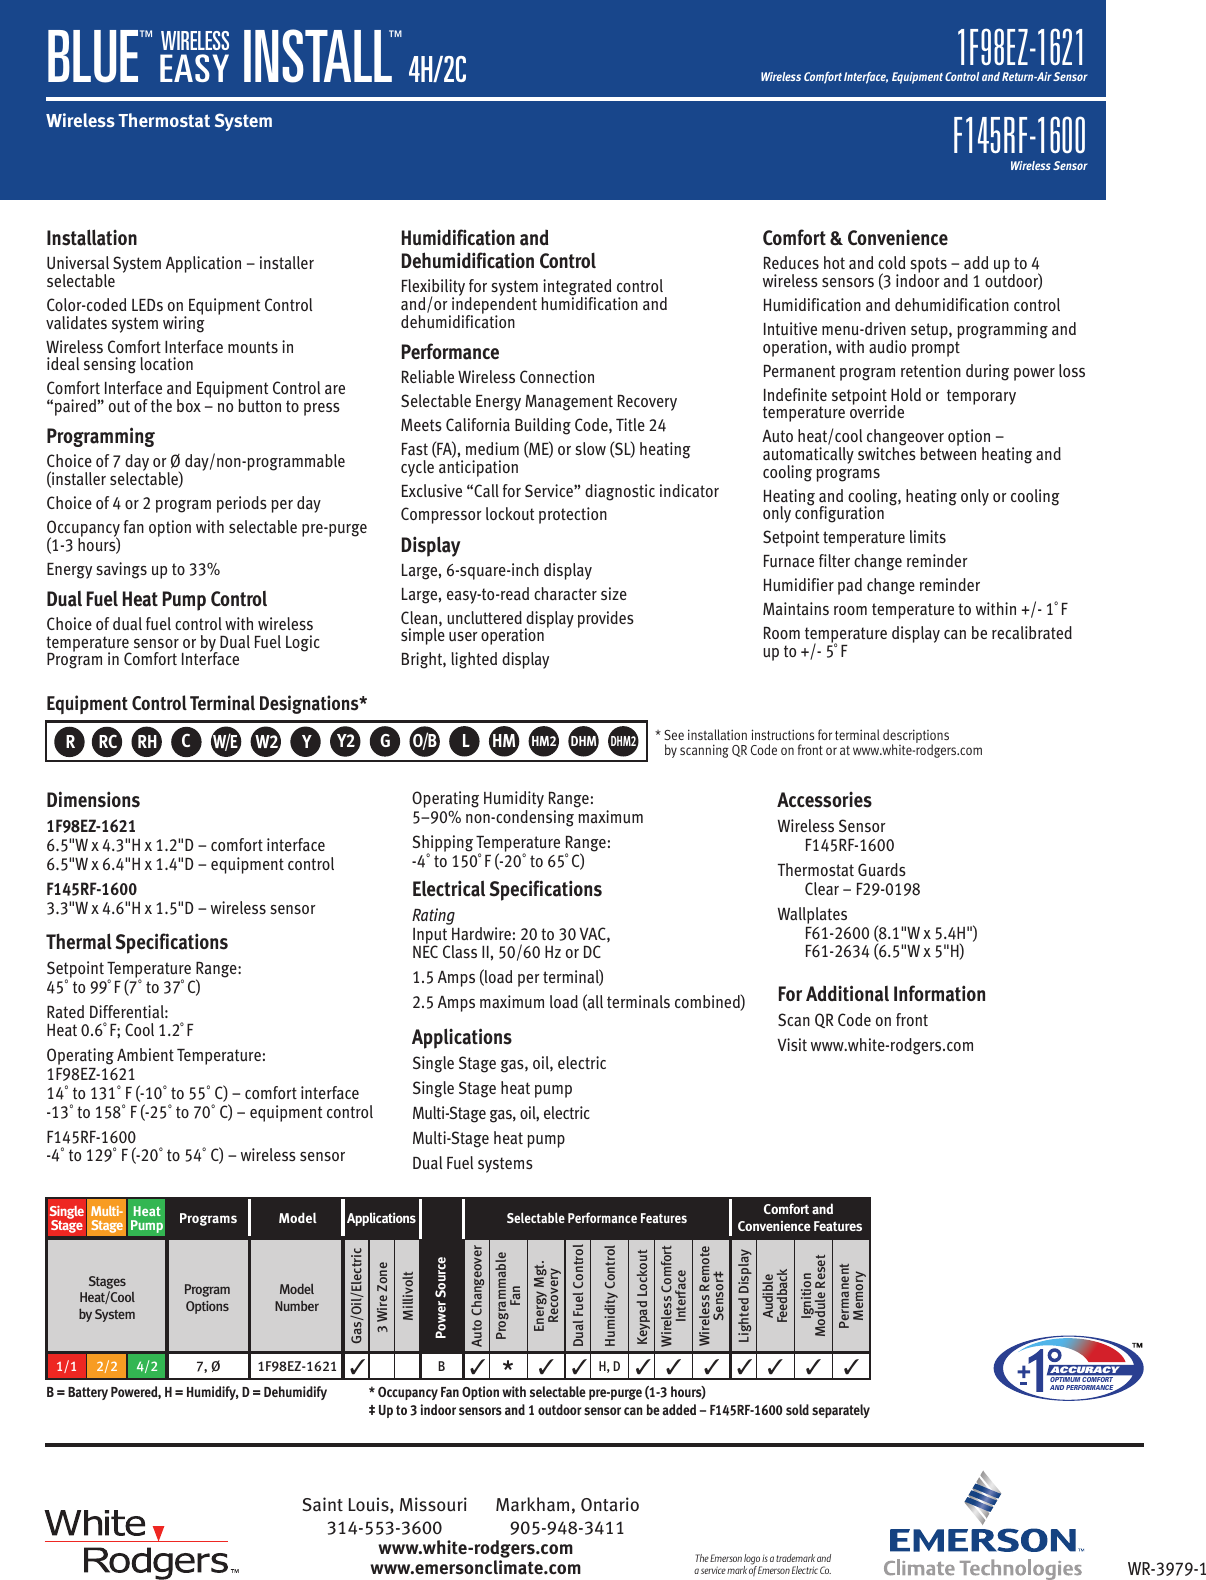 Page 2 of 2 - White-Rodgers White-Rodgers-1F98Ez-1621-Emerson-Blue-Wireless-Easy-Install-Thermostat-System-Specification-Sheet- 136839_WirelessEasyInstall_SS_Rev_Crp  White-rodgers-1f98ez-1621-emerson-blue-wireless-easy-install-thermostat-system-specification-sheet